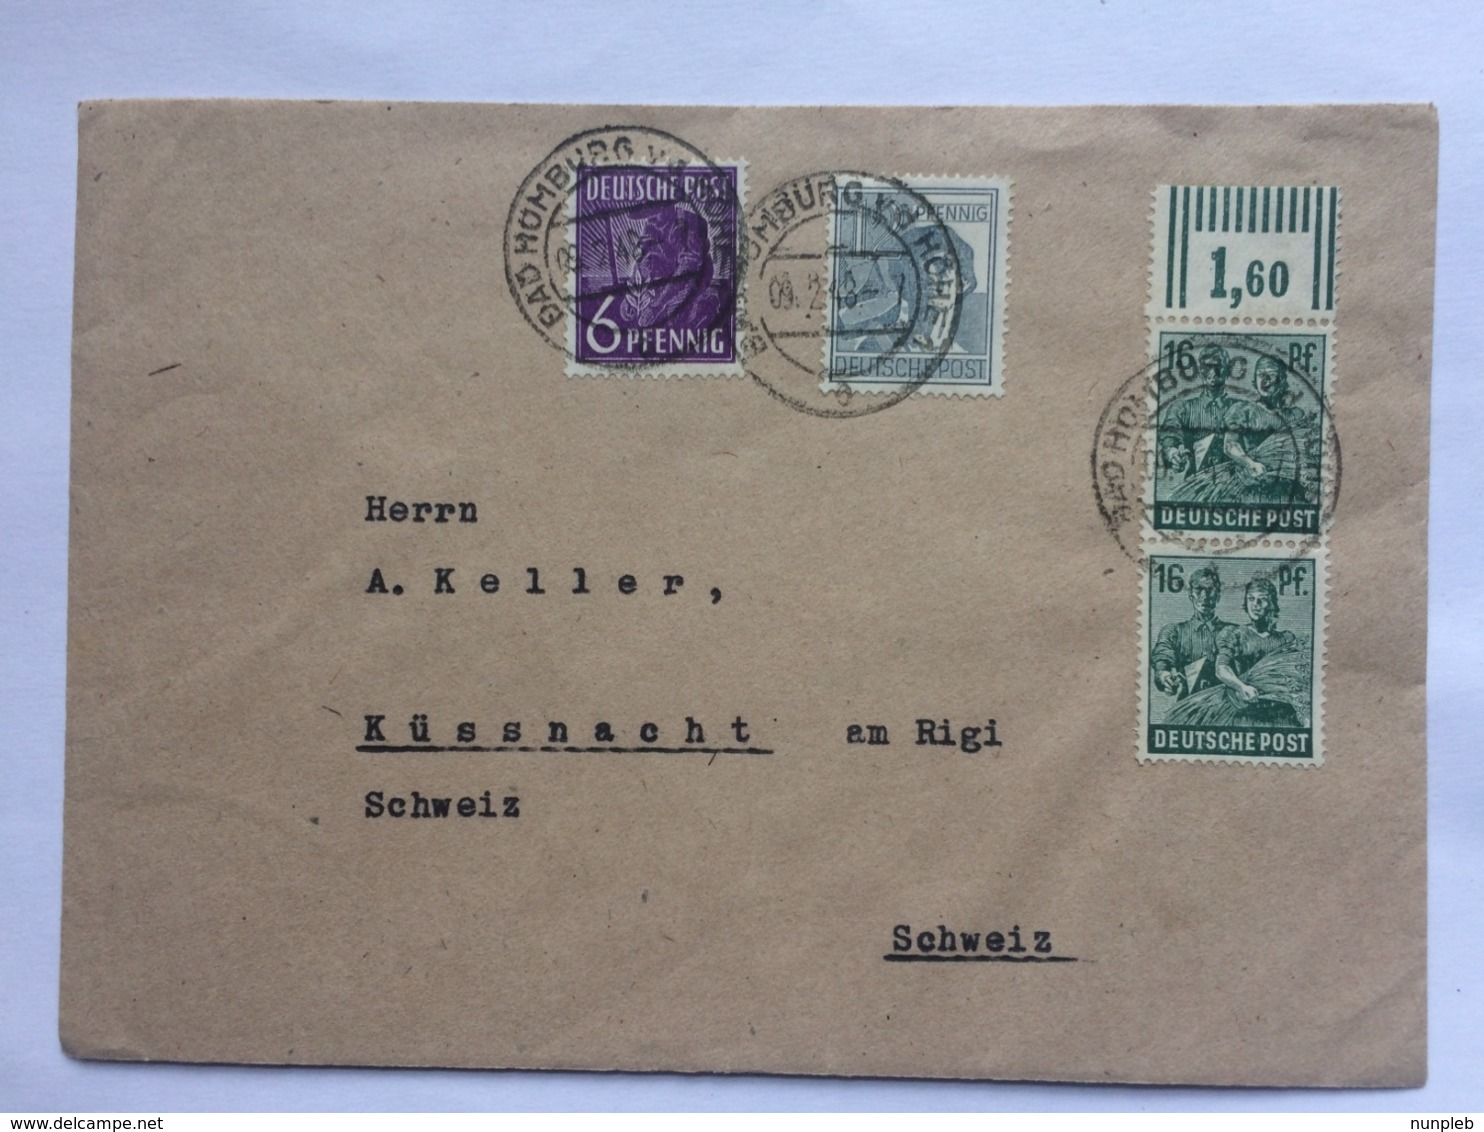 GERMANY 1948 Allied Cover Bad Homburg To Kussnacht Switzerland - Zone AAS